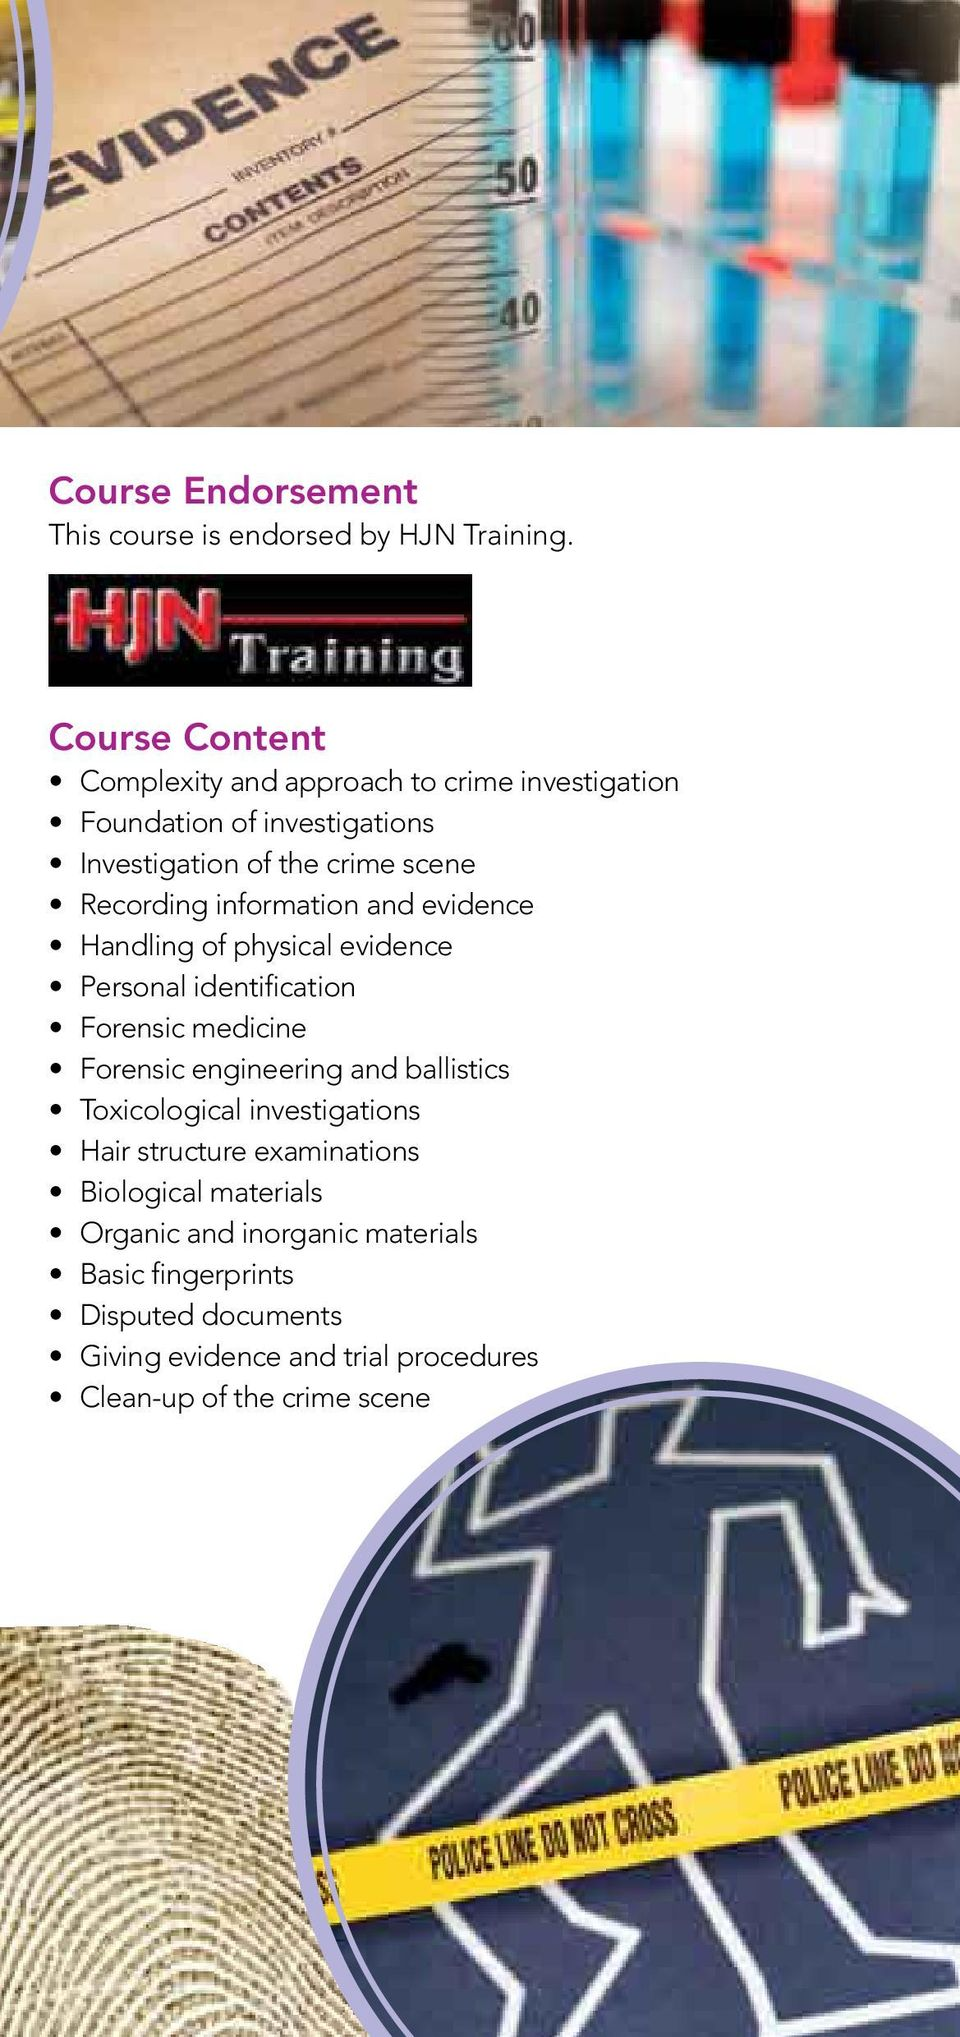 information and evidence Handling of physical evidence Personal identification Forensic medicine Forensic engineering and ballistics